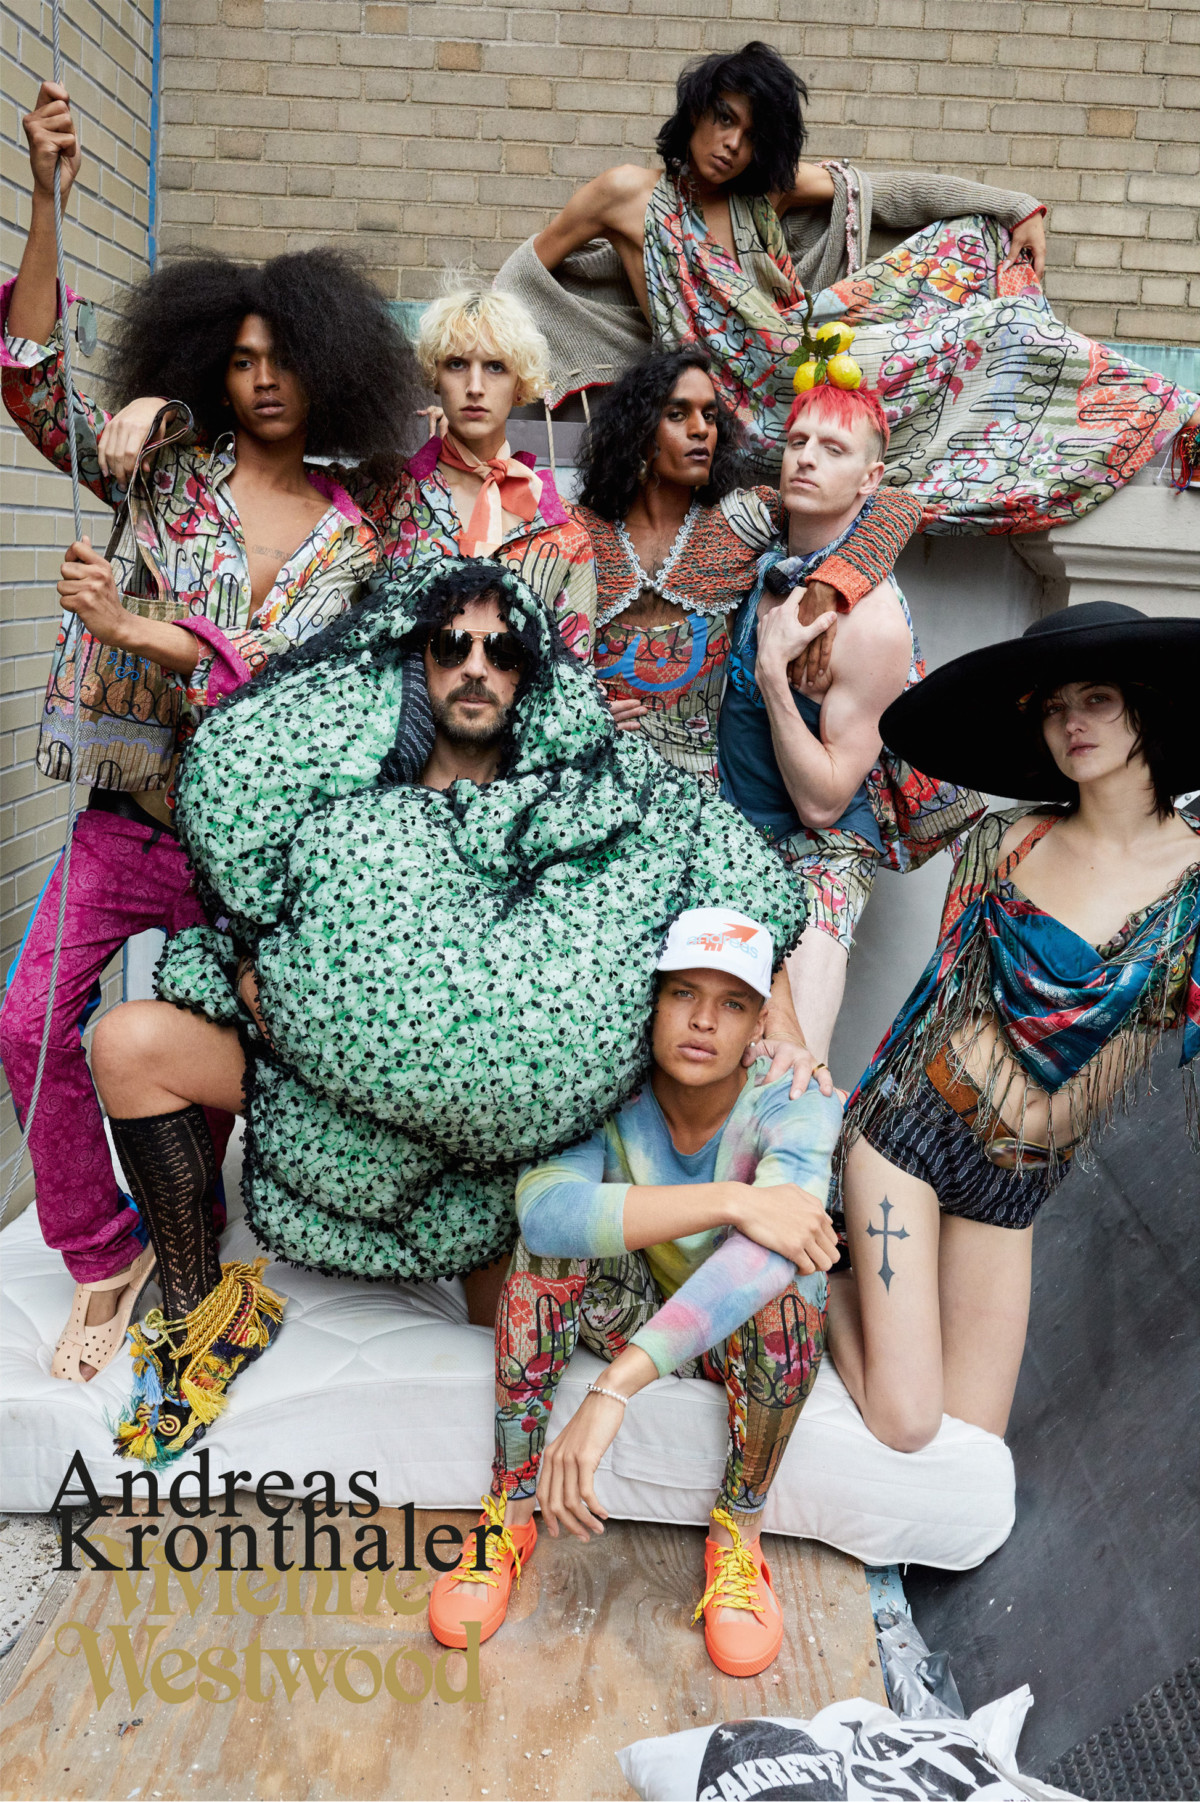 VIVIENNE WESWOOD FEATURES NY CLUB KIDS IN ITS NEW CAMPAIGN